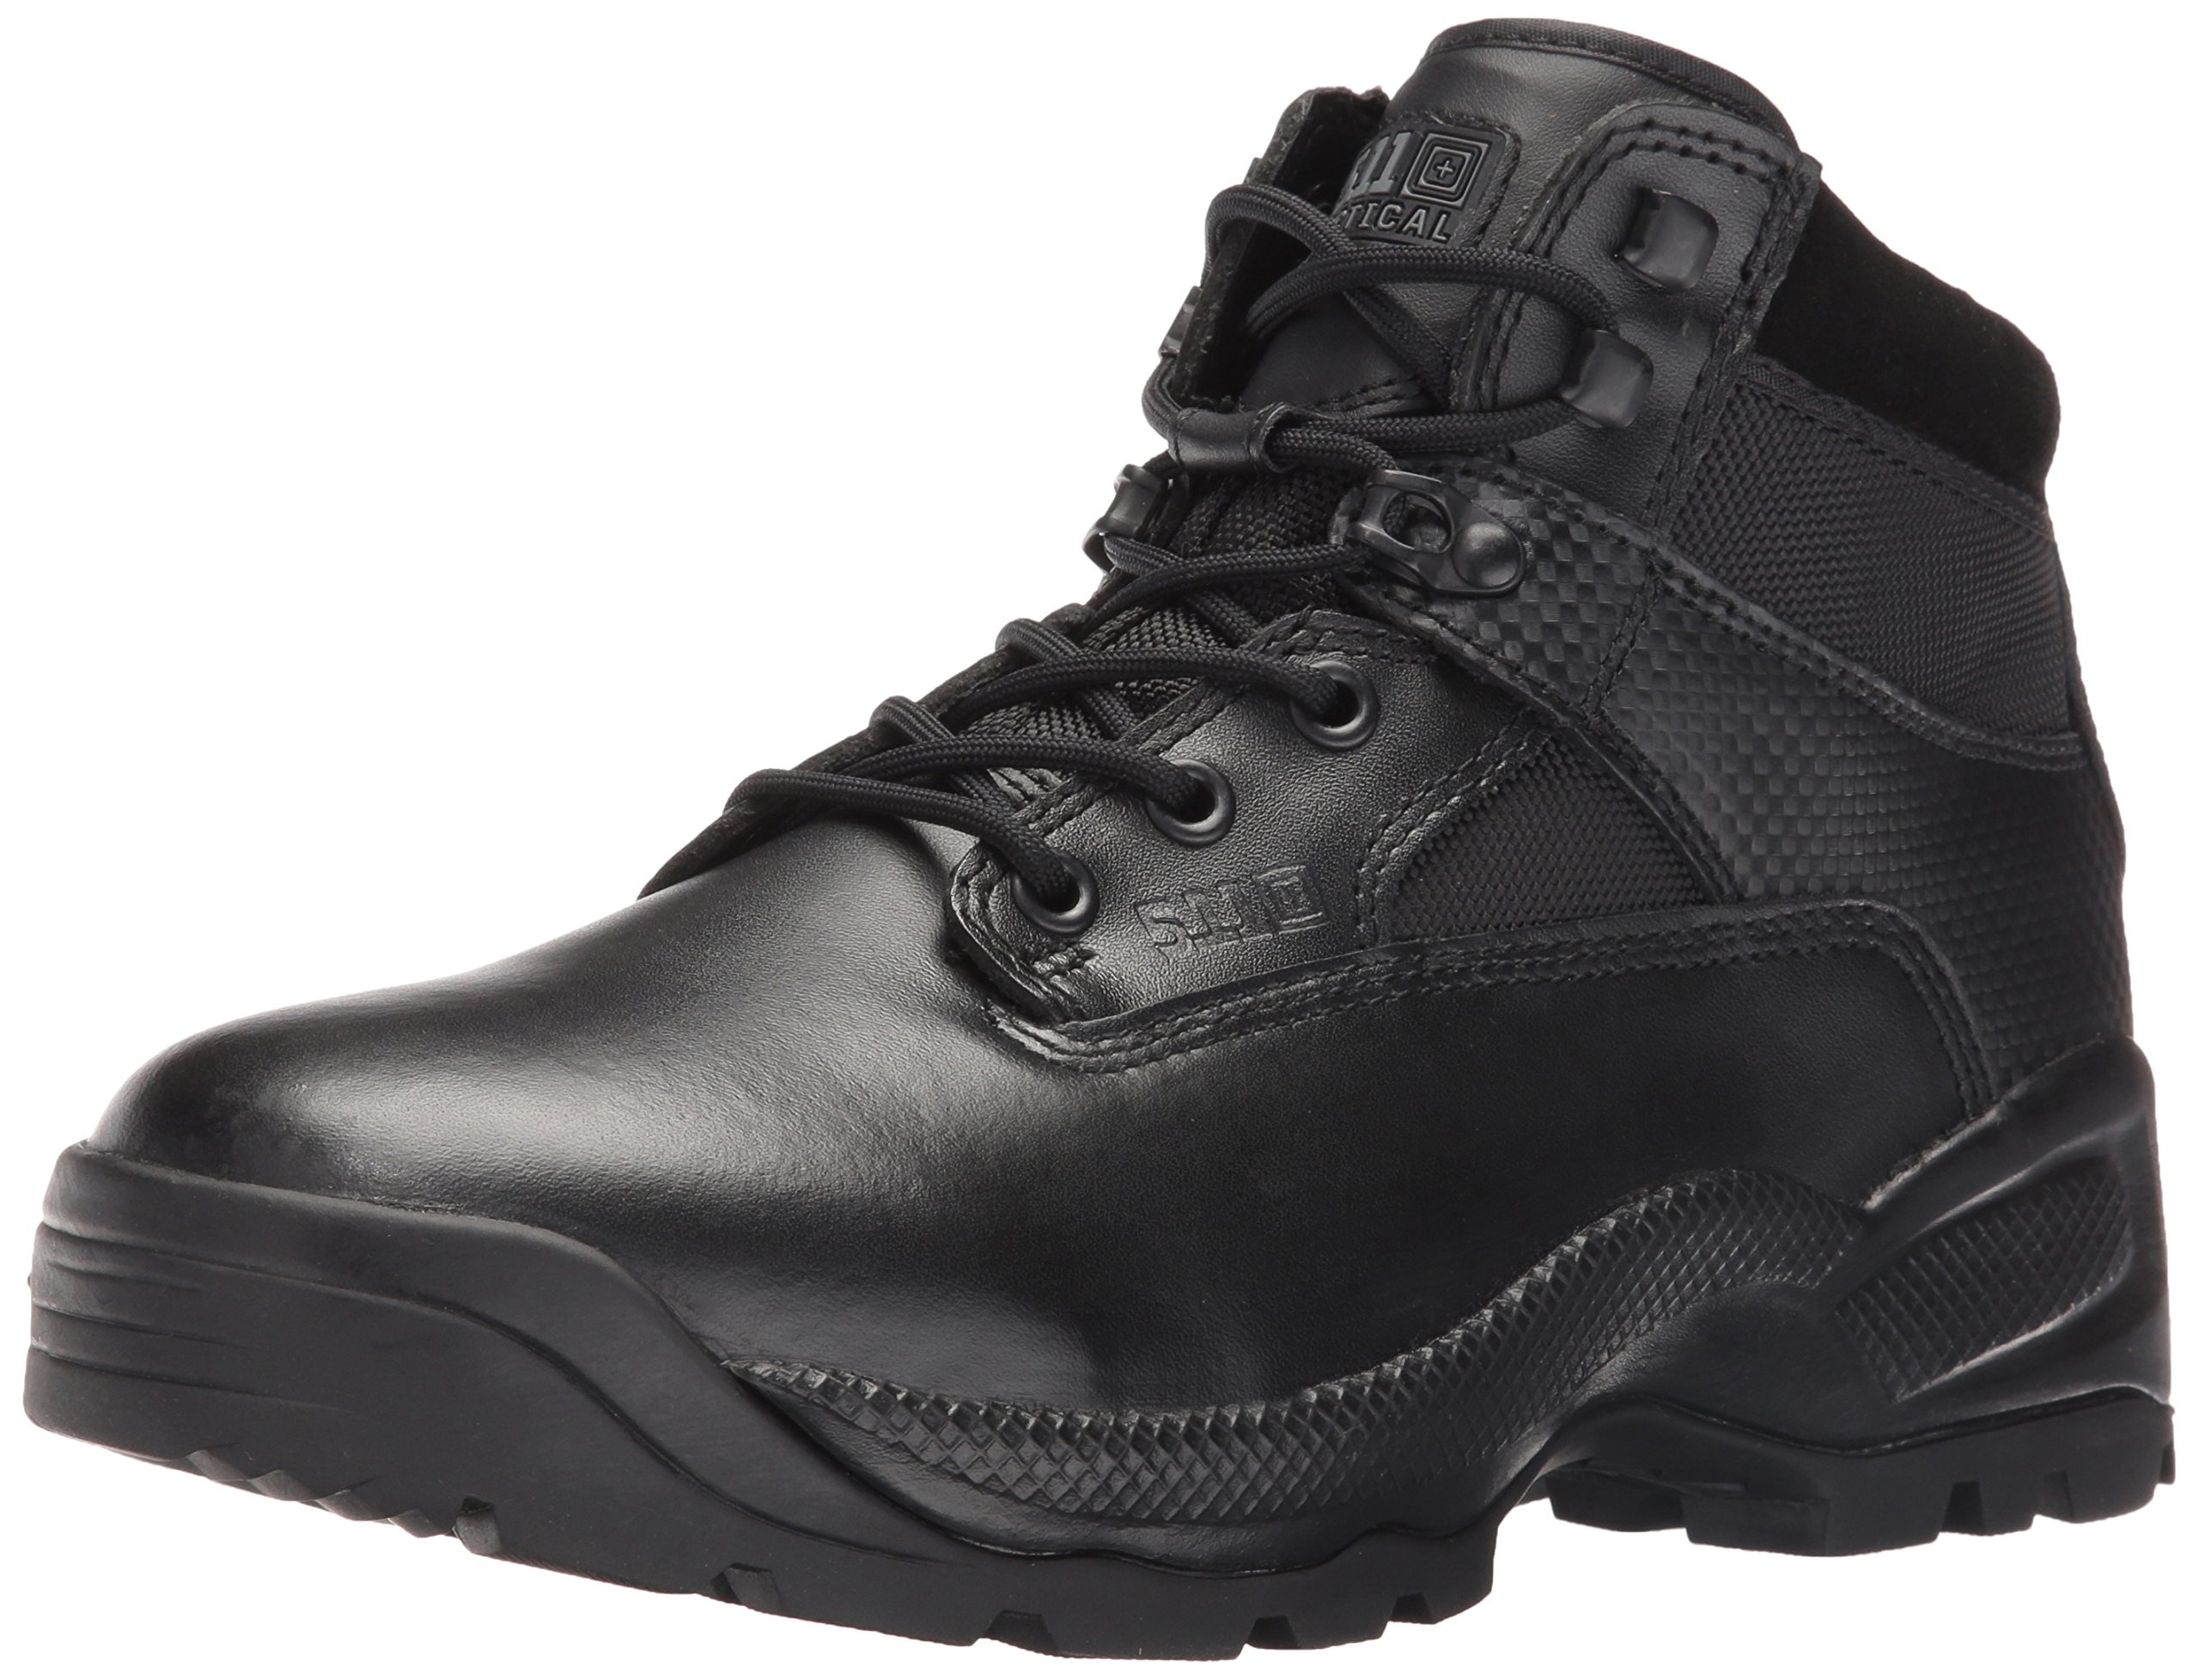 5.11 Tactical A.T.A.C. 6'' Side Zip Boot, Black, 12 (R) by 5.11